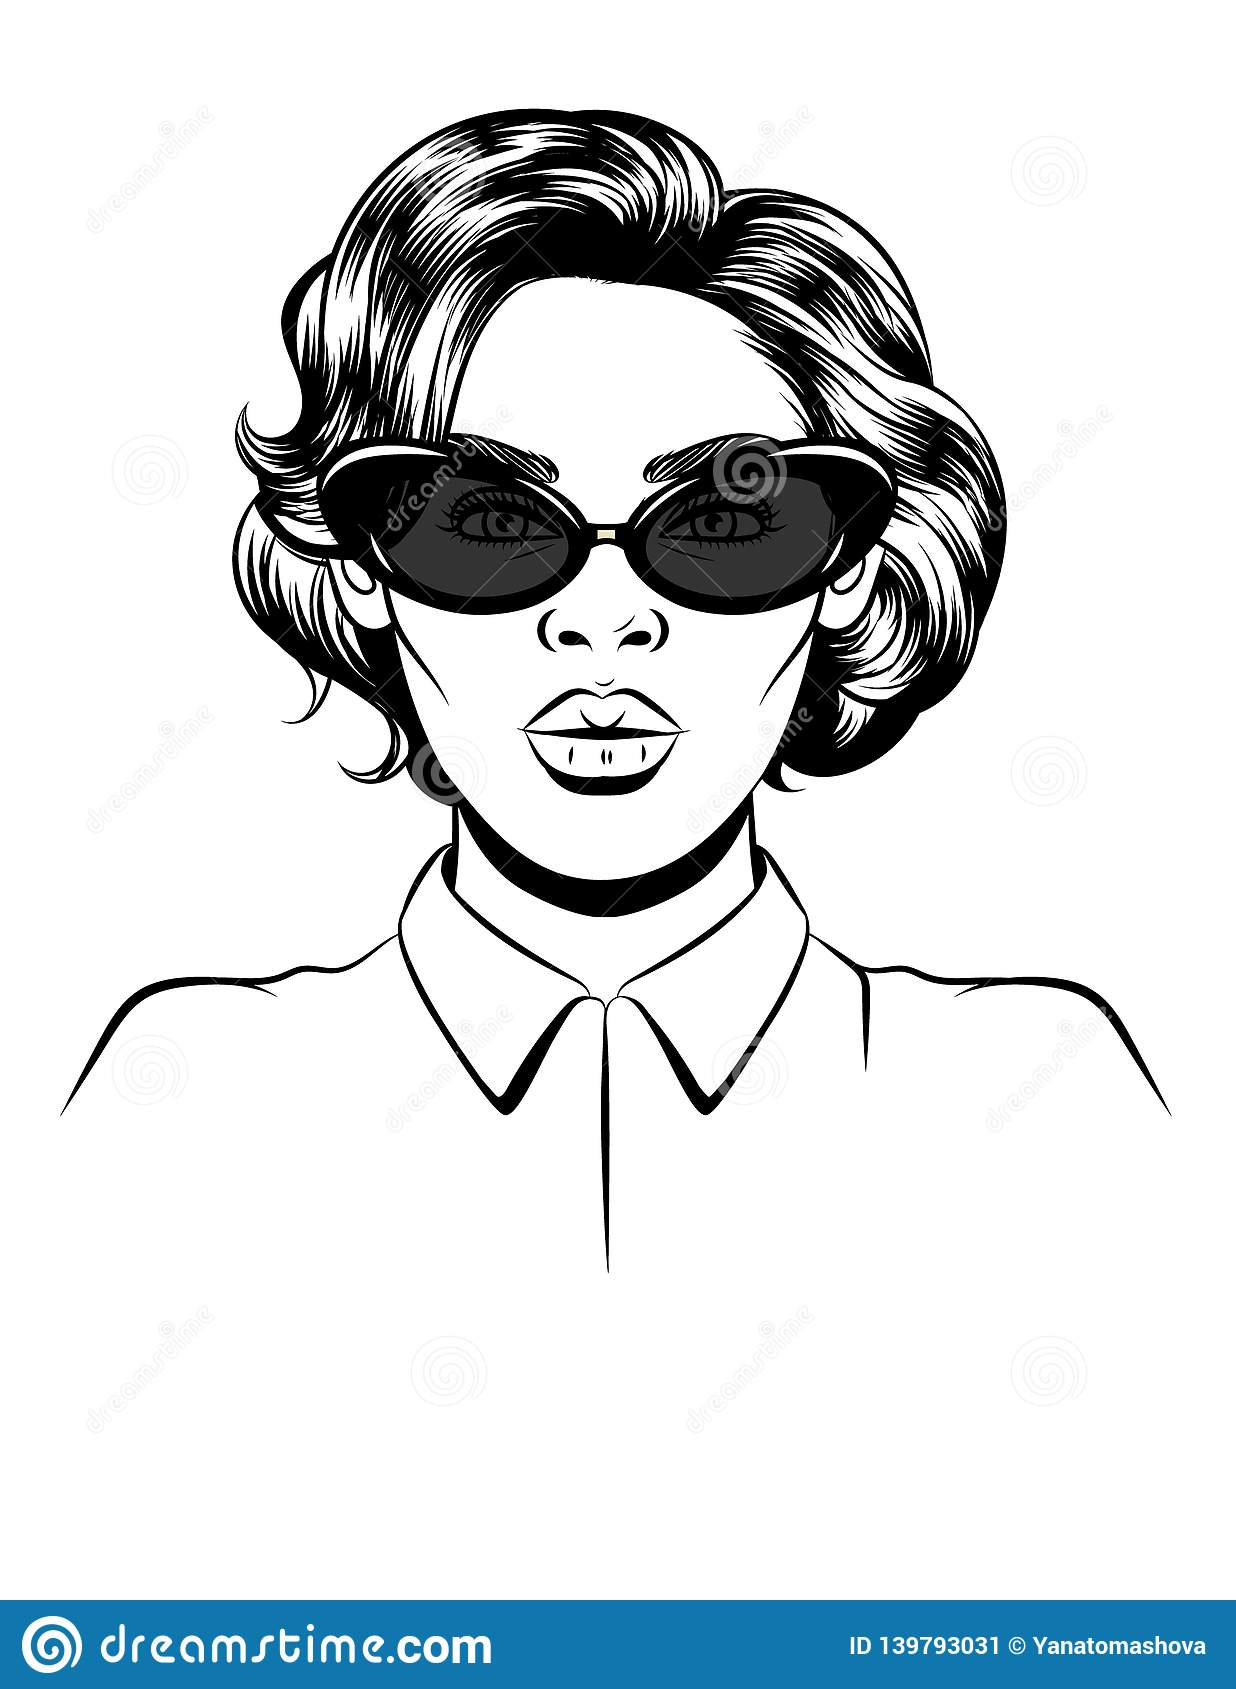 Black white illustration of a female portrait on white background. Glamorous woman in sunglasses. Female silhouette. Female